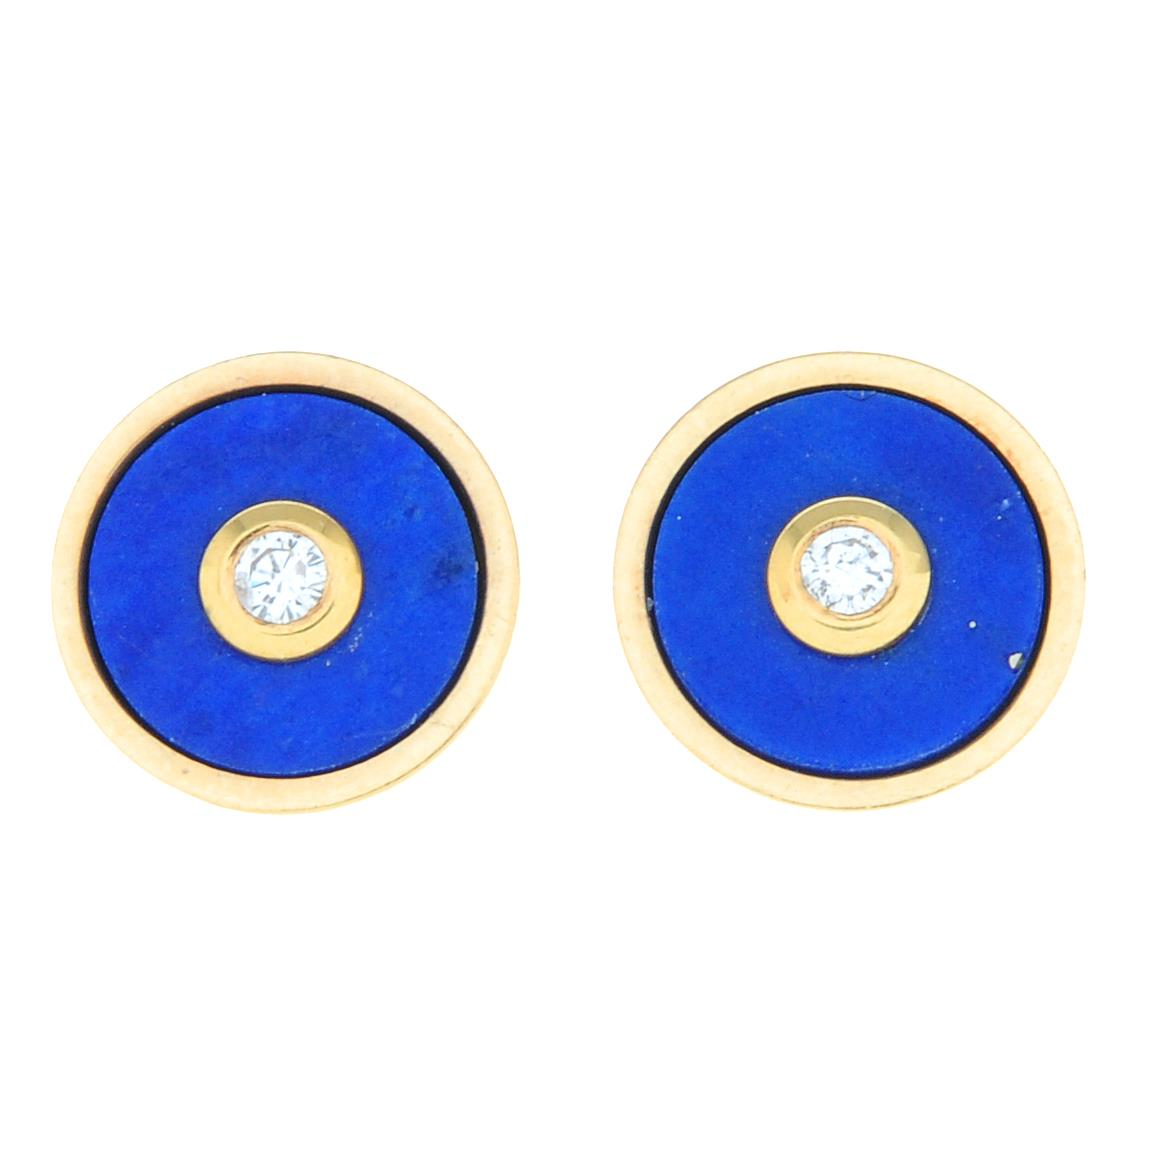 A pair of 18ct gold lapis lazuli and diamond stud earrings.Hallmarks for 18ct gold.Length 0.8cms.